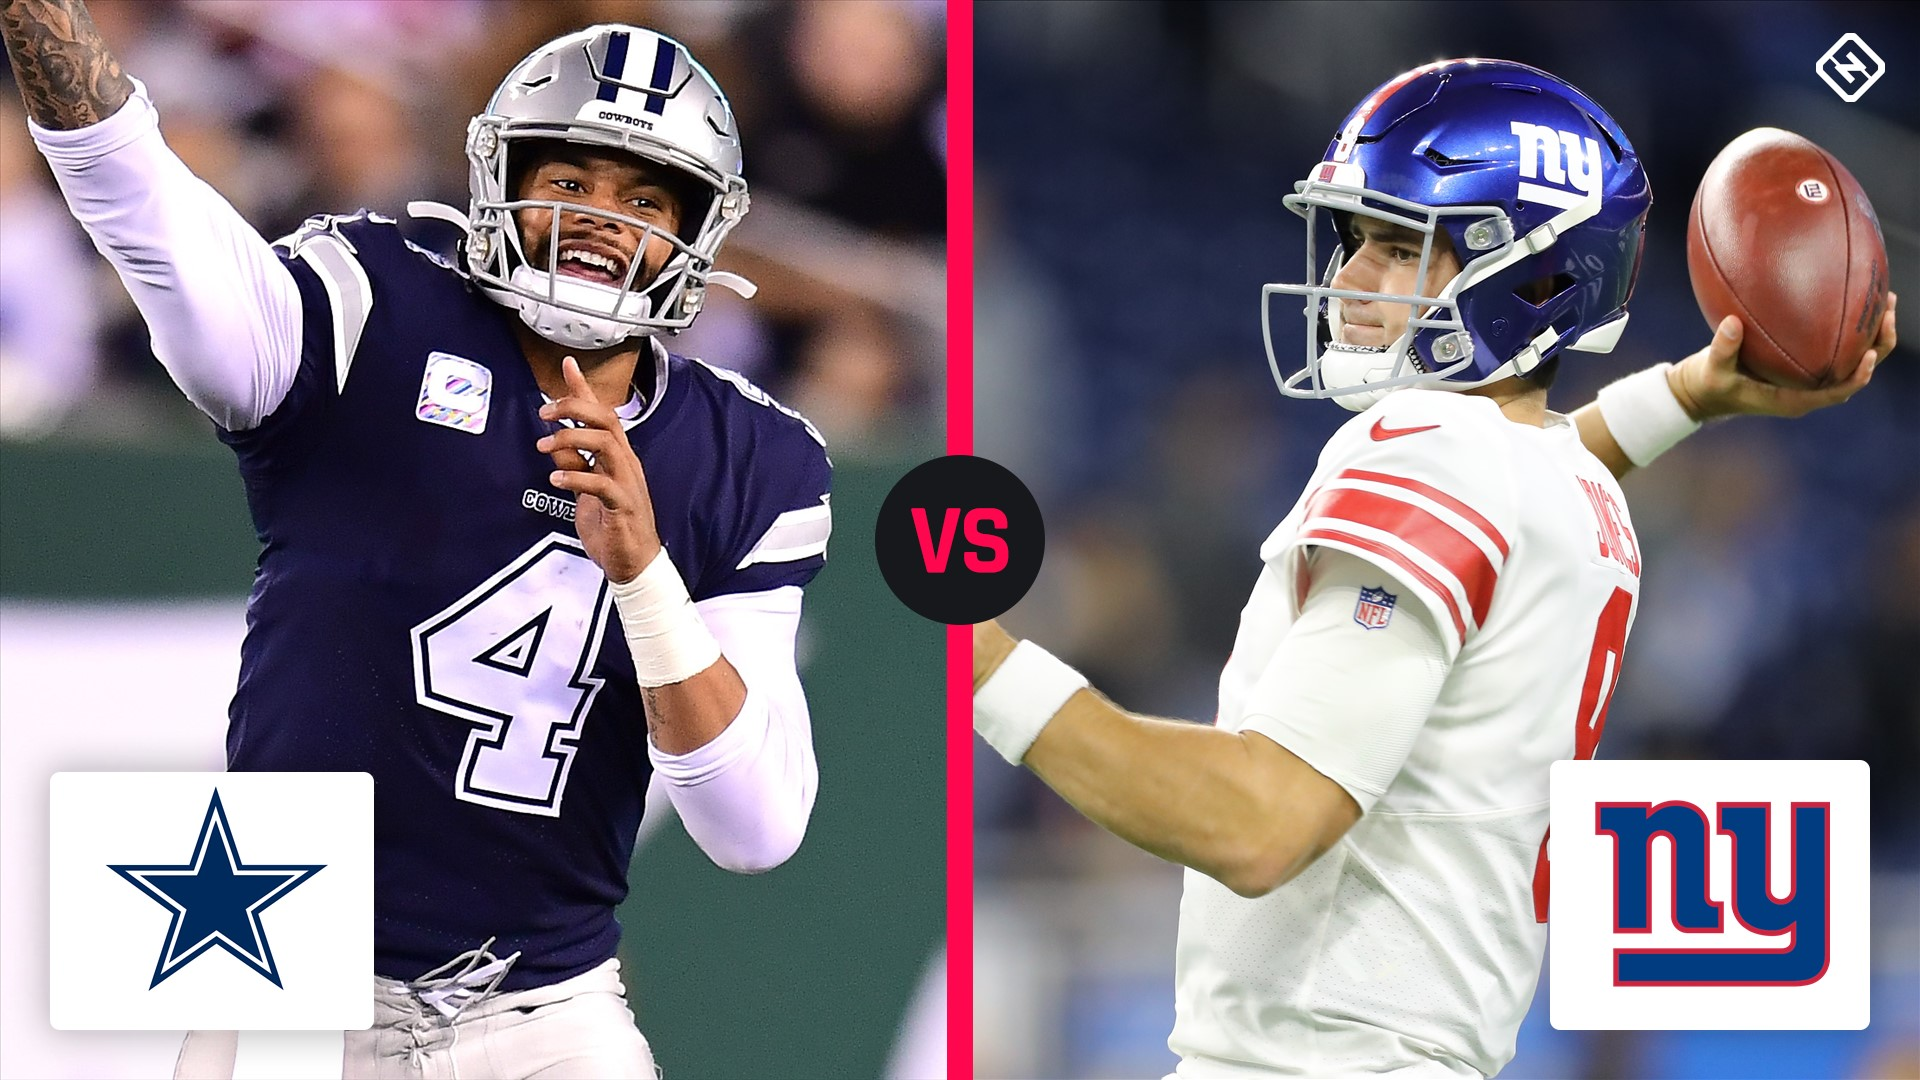 Cowboys vs. Giants: Live score, updates, highlights from 'Monday Night Football'